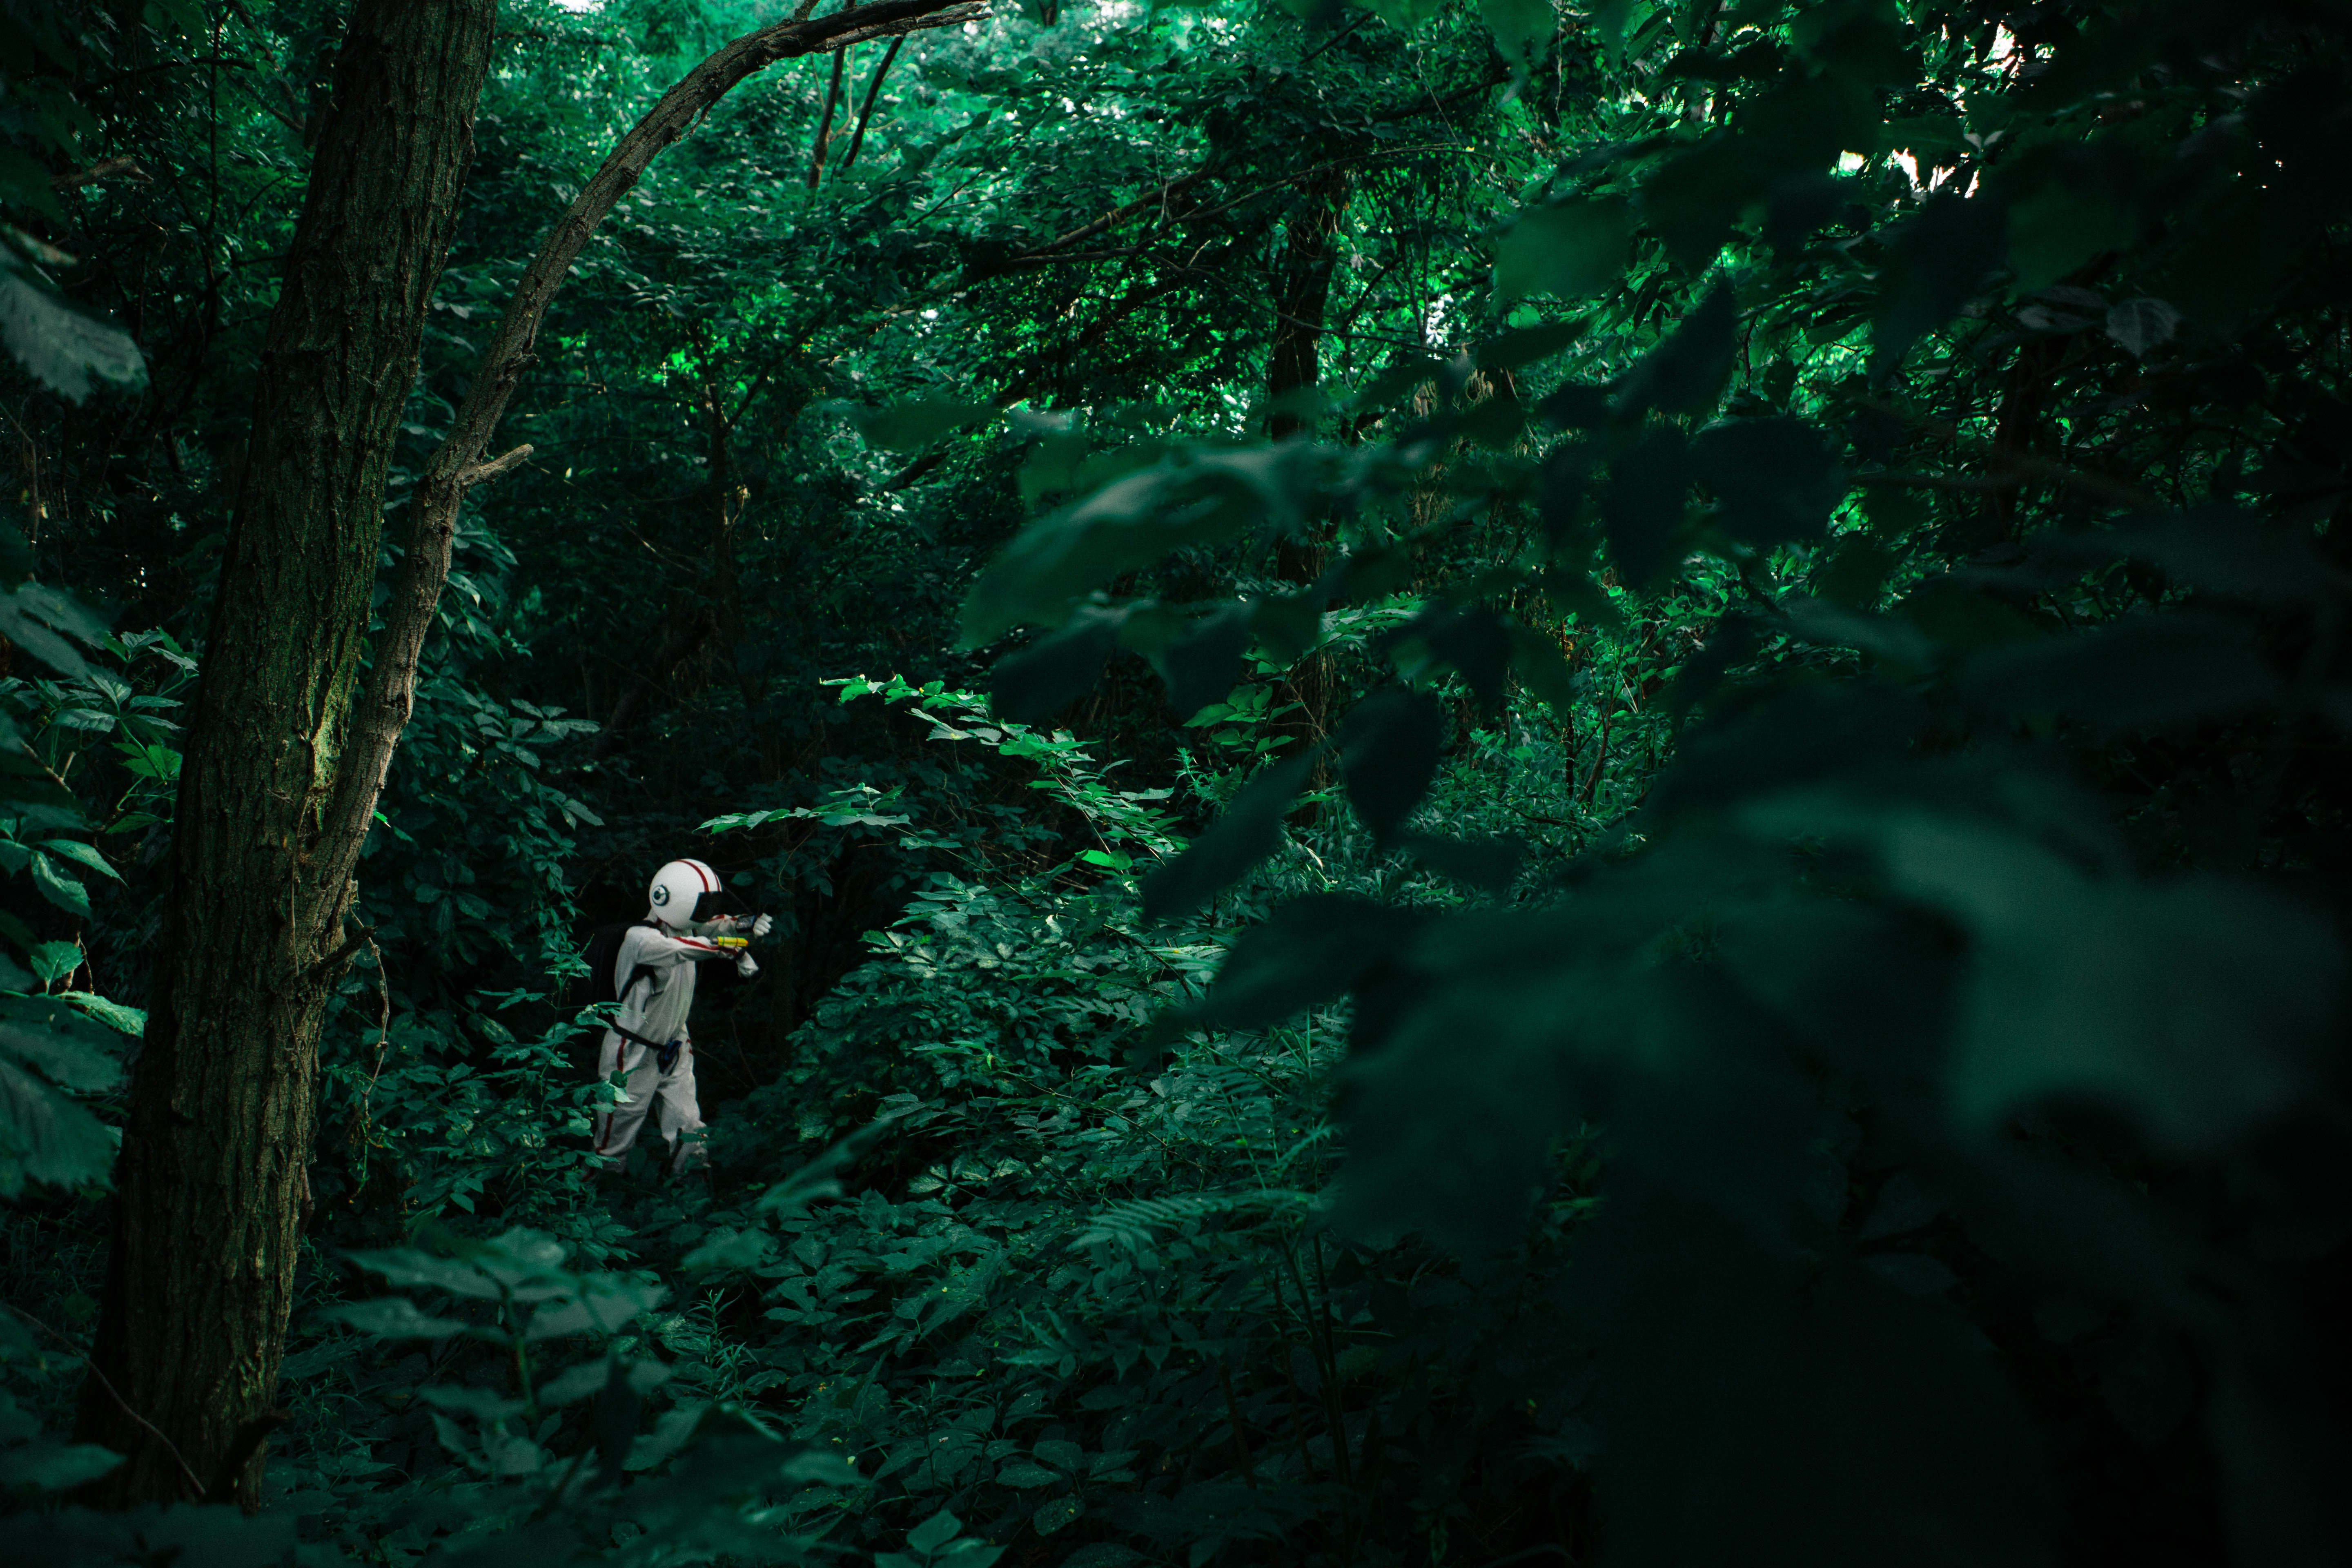 A person dressed in an other-worldly space suit surrounded by verdant forest vegetation on Nun's Island